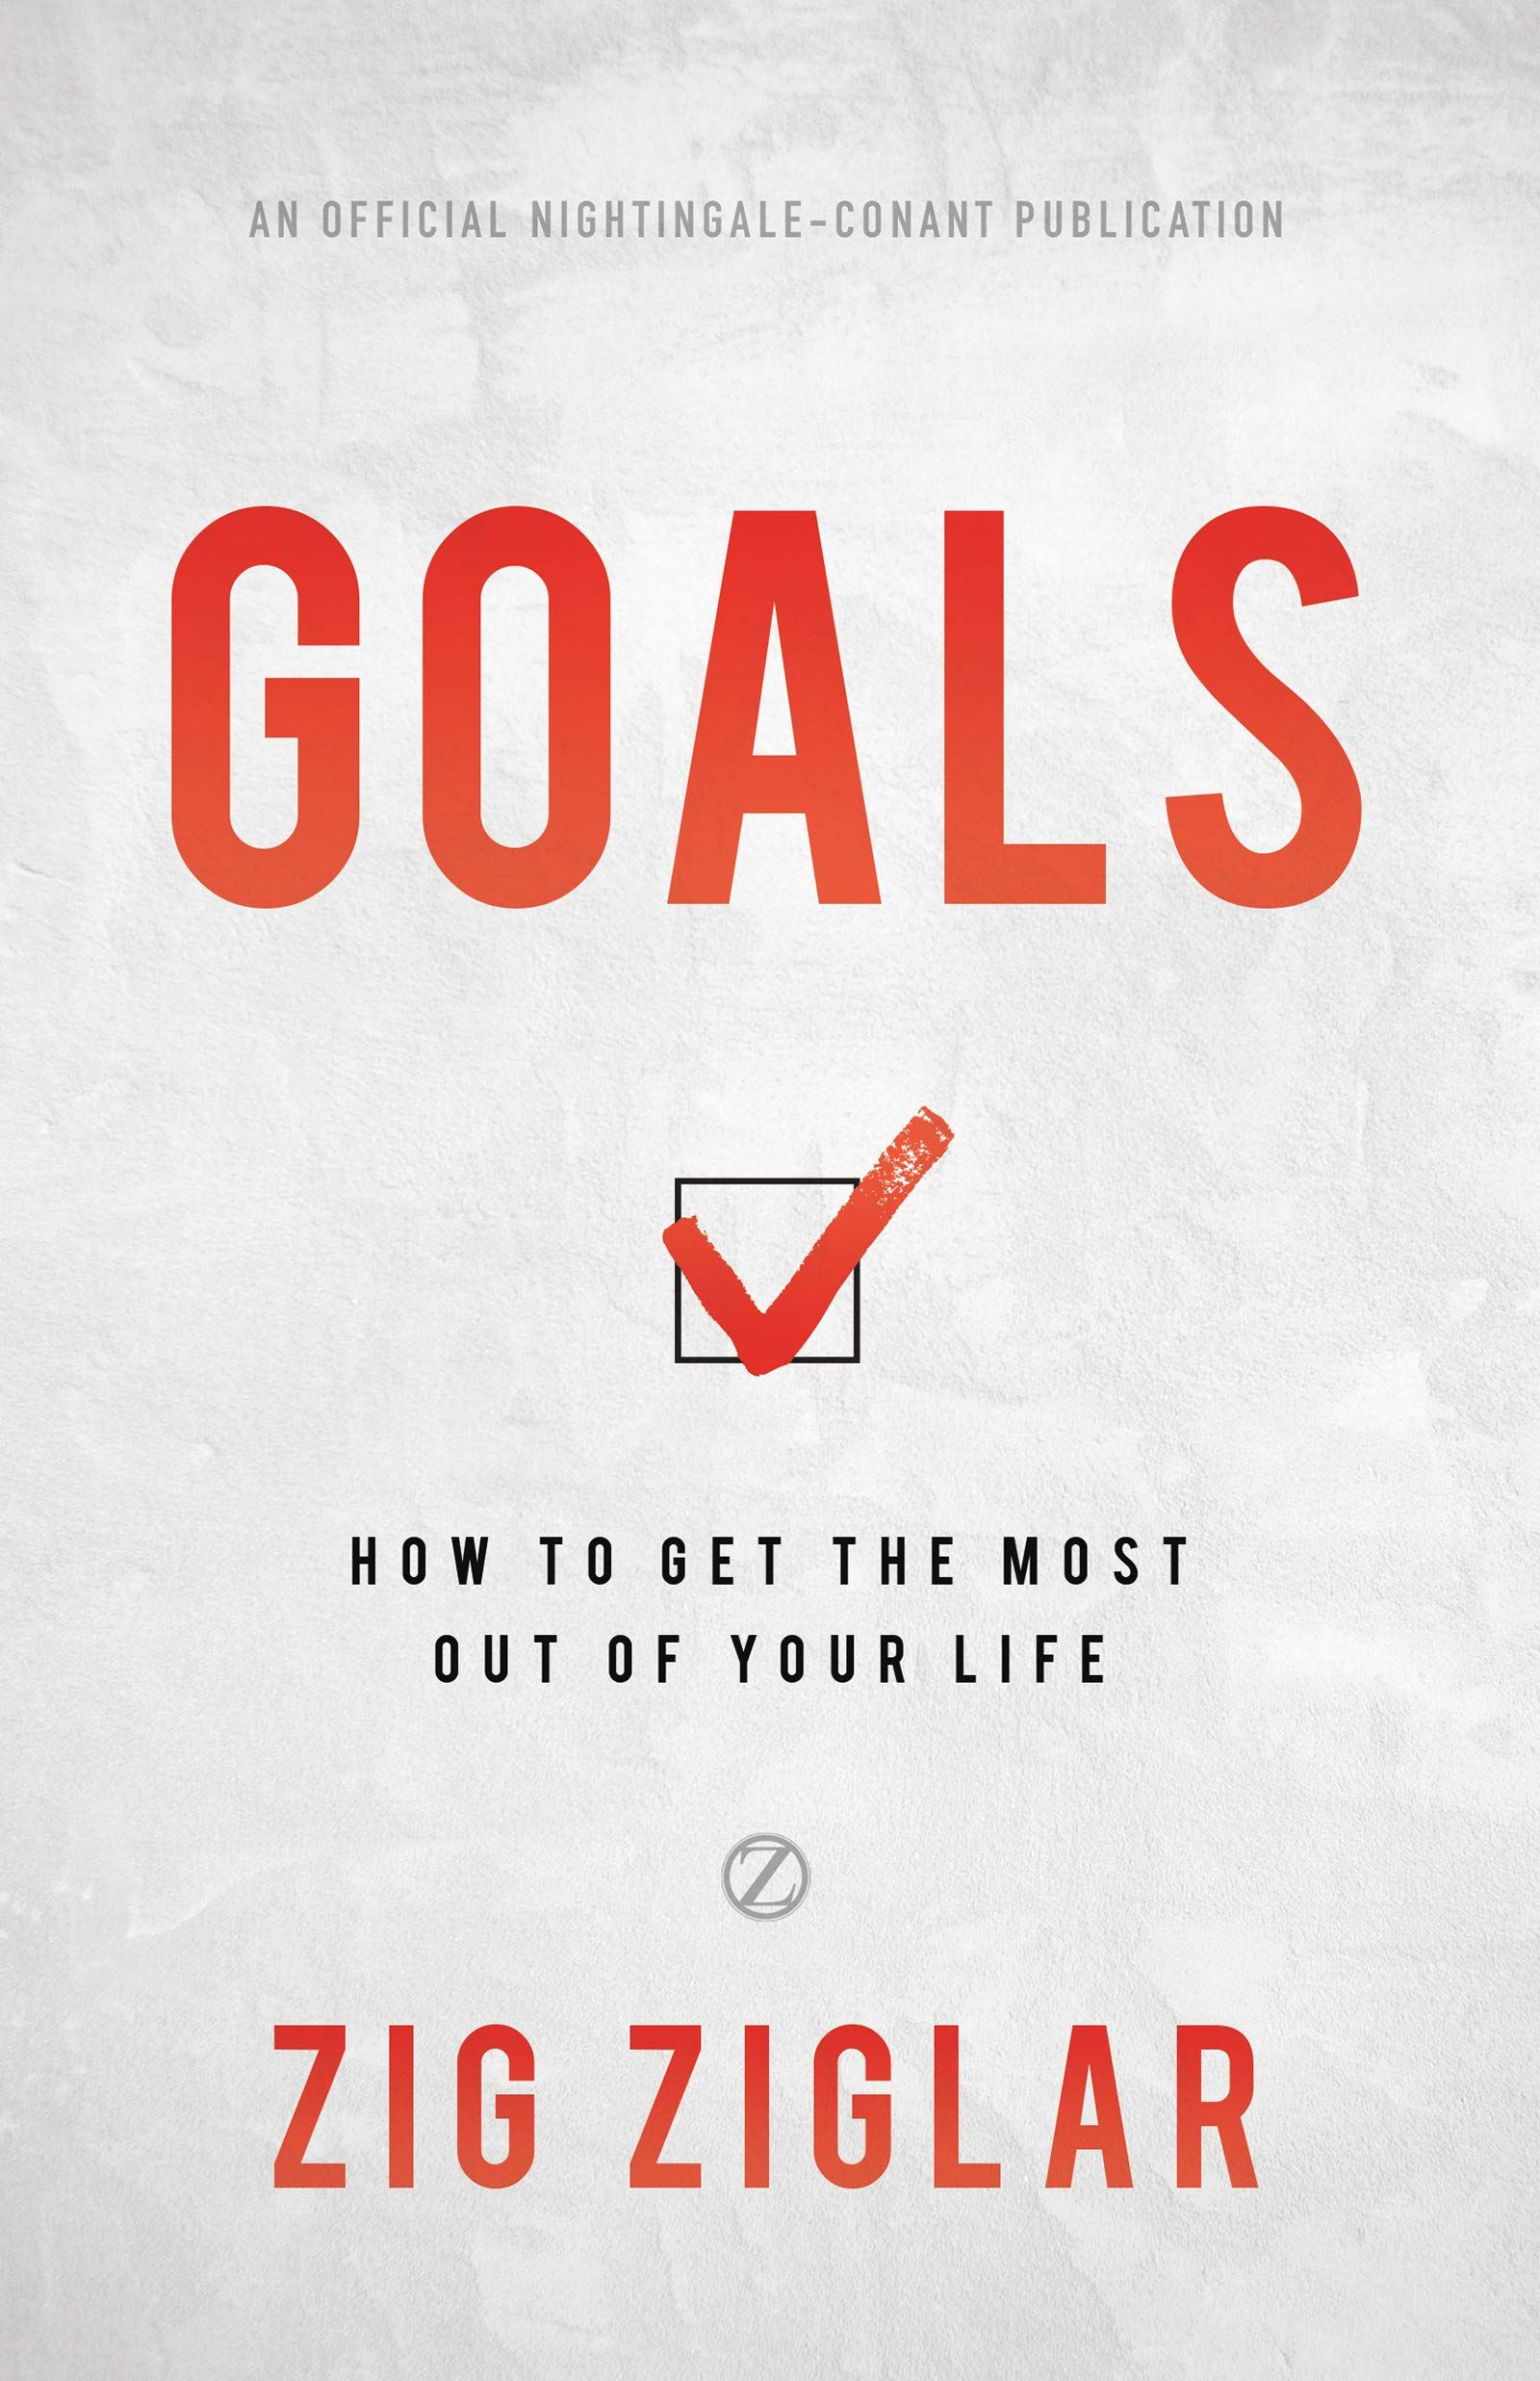 5 Ways To Get That Burning Motivation To Reach Your Goals